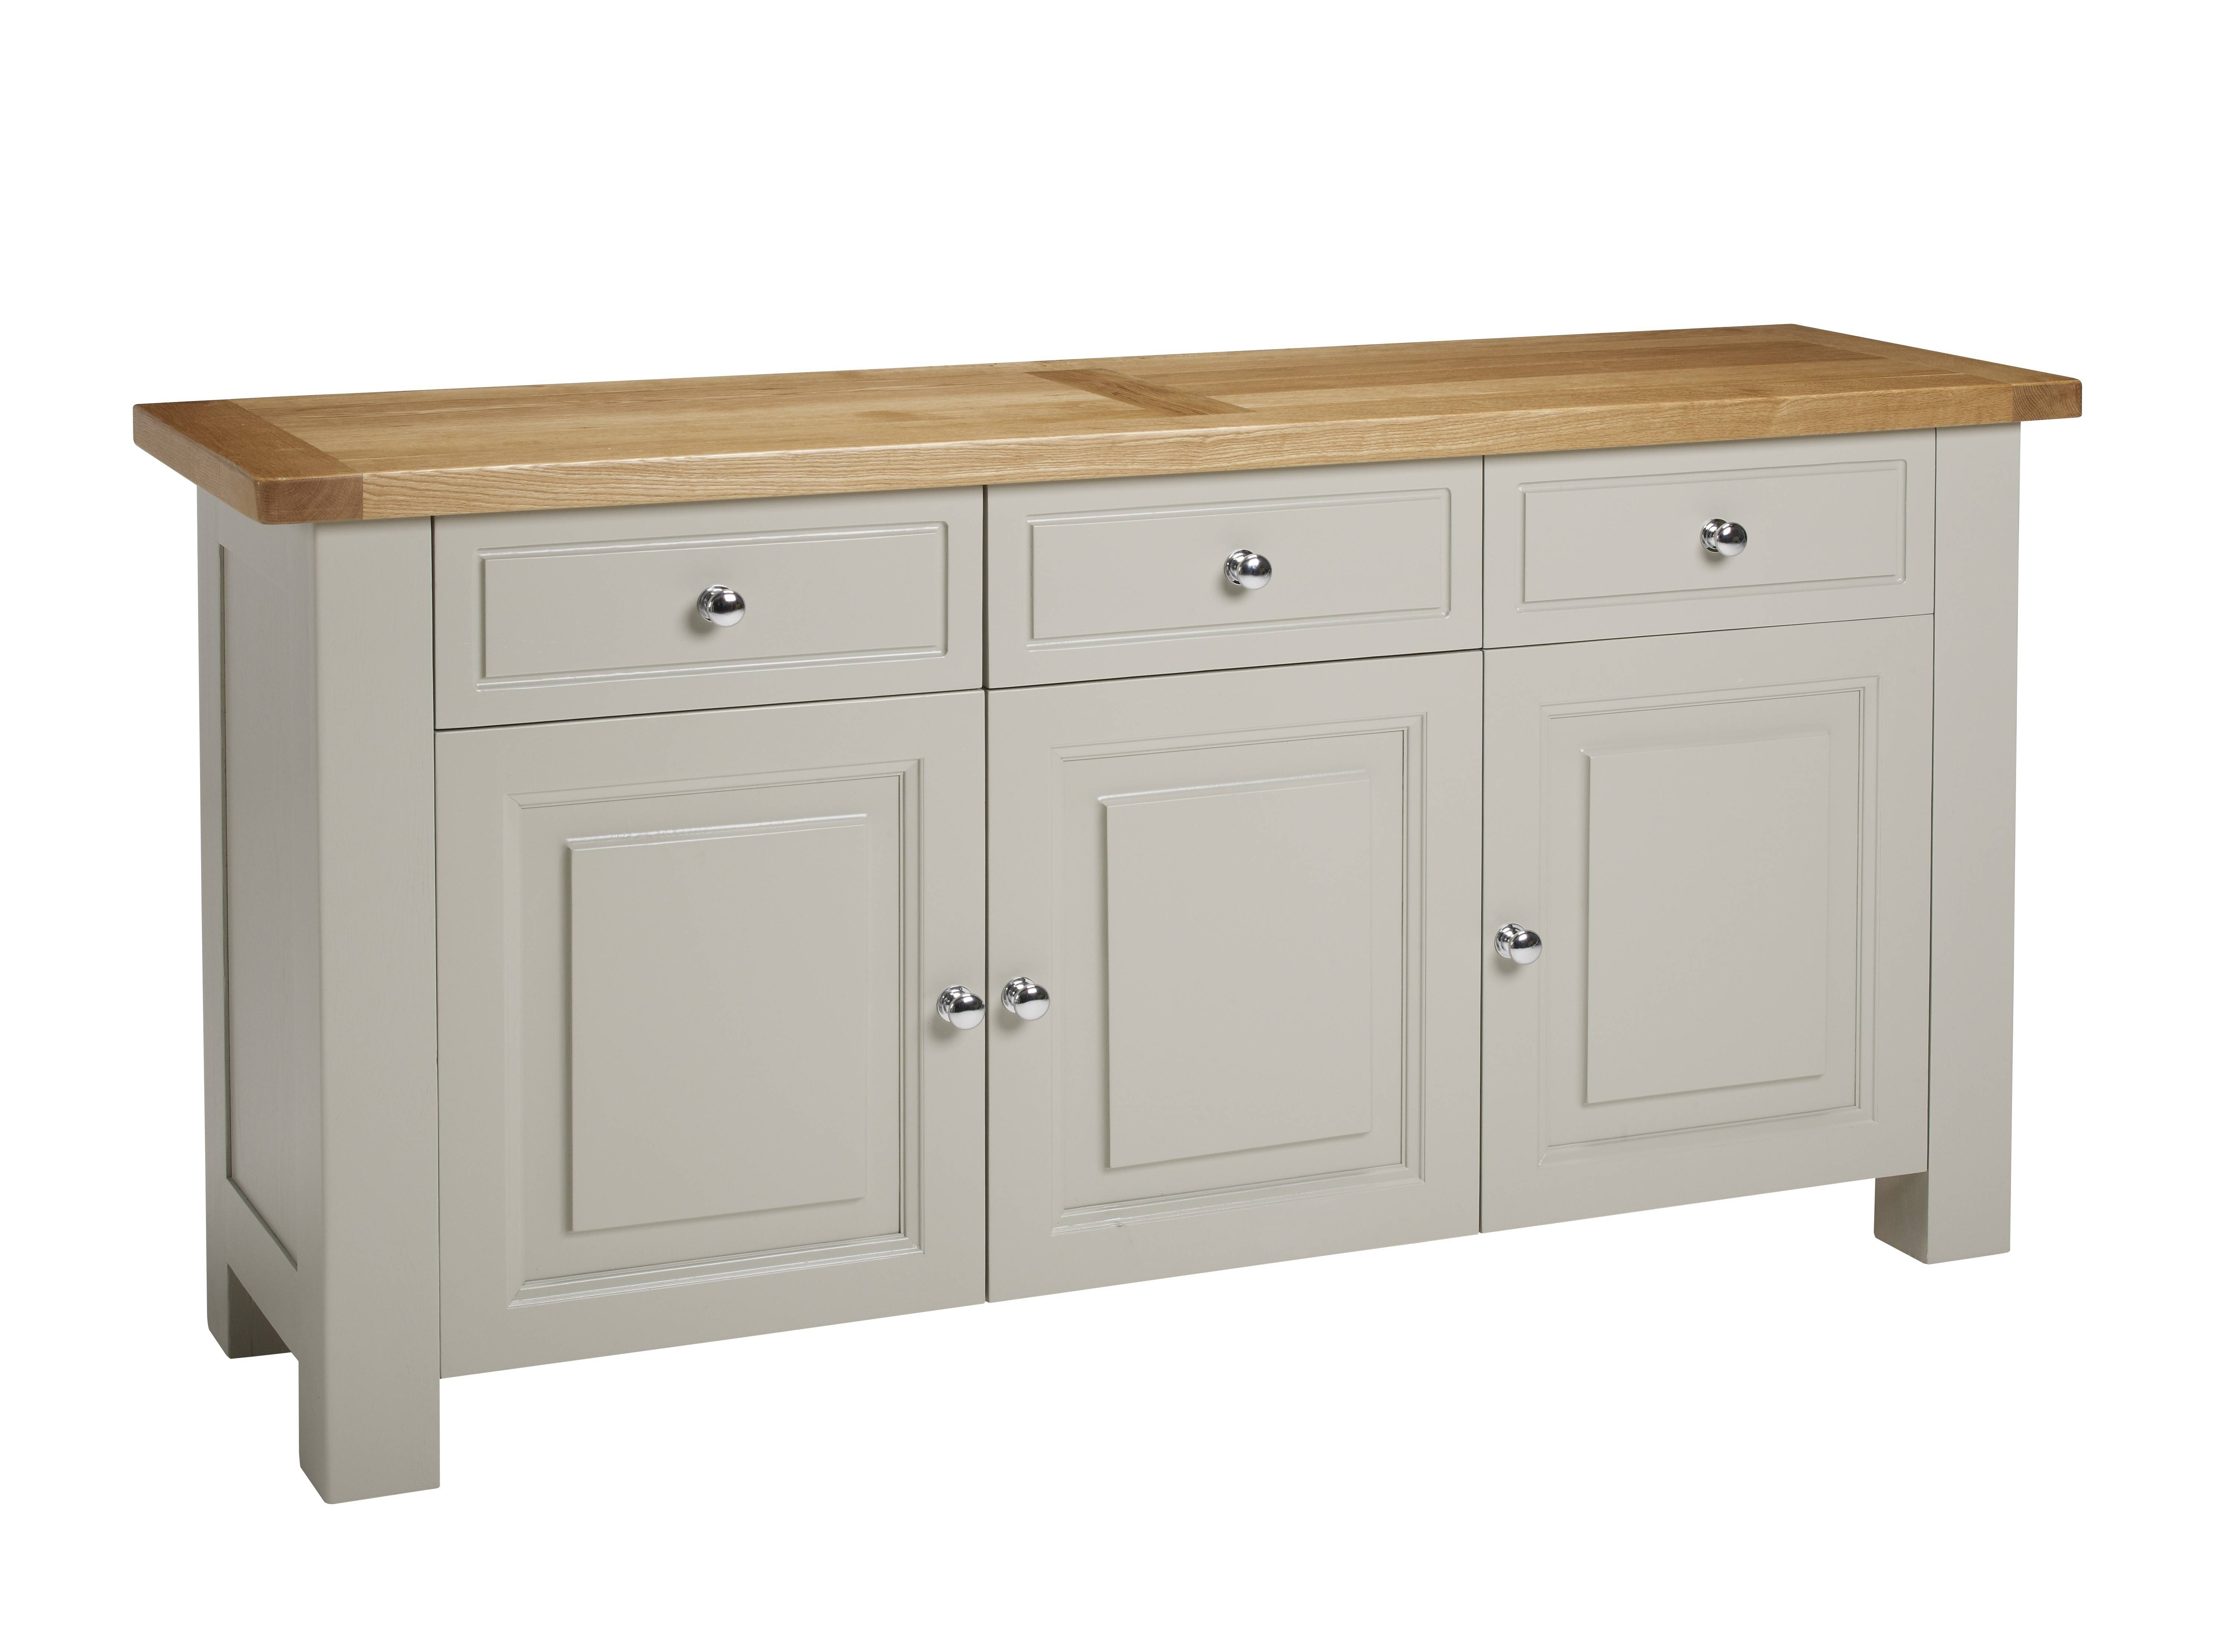 Bretagne Oak Large Sideboard Furniture Yourhome Store – Lentine Throughout Most Recently Released Large Oak Sideboard (View 11 of 15)